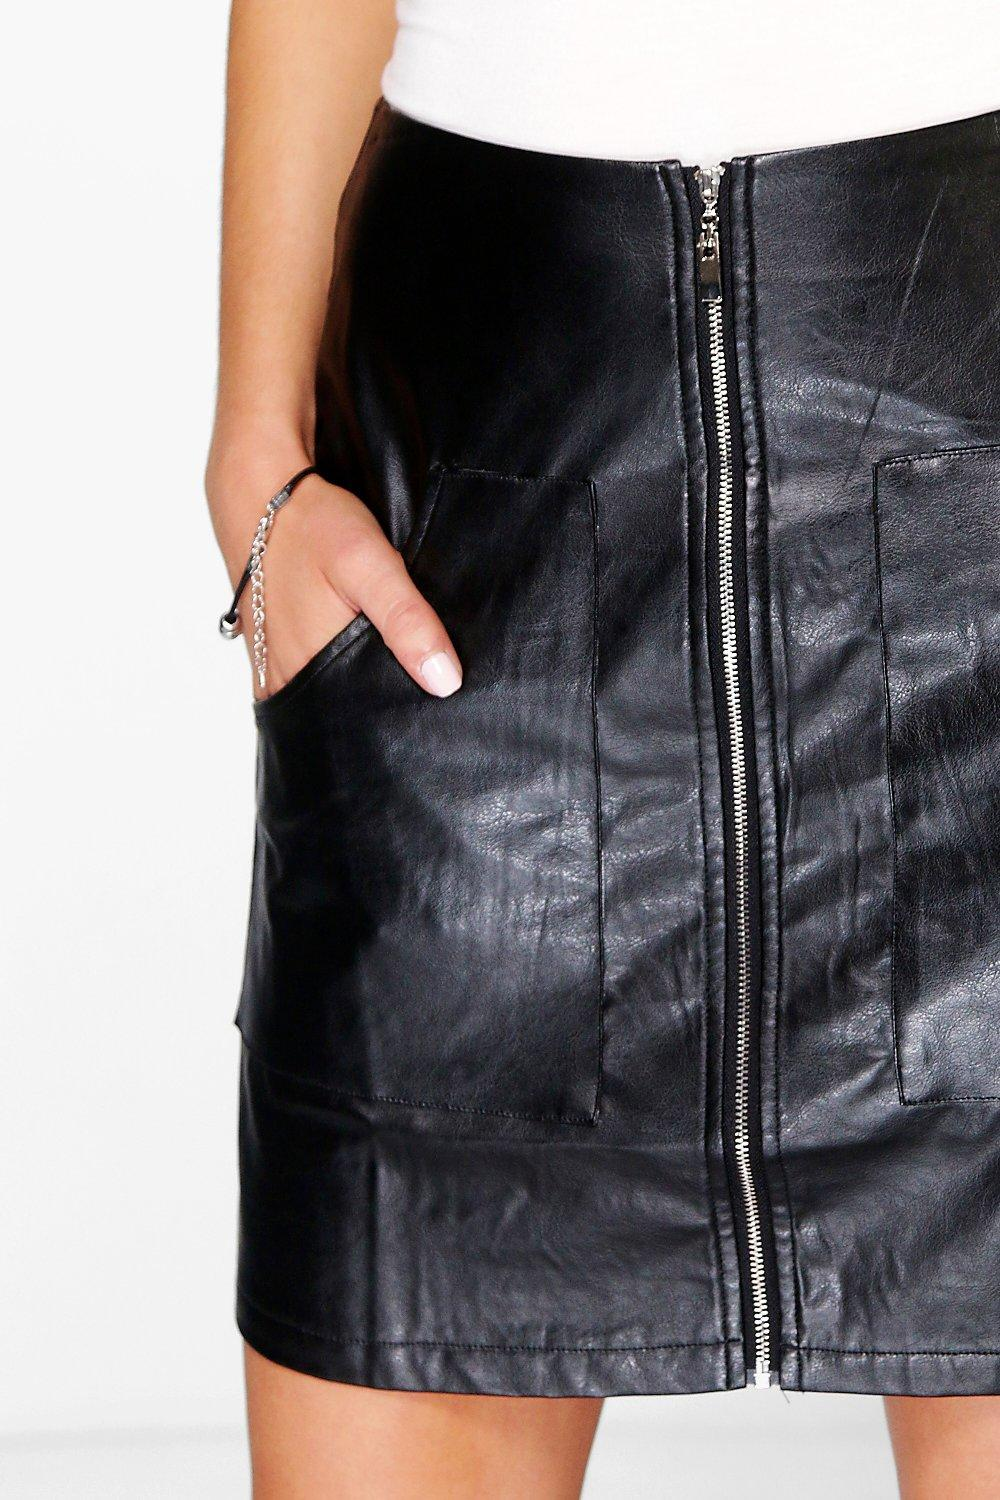 boohoo gisella pocket front leather look a line skirt ebay